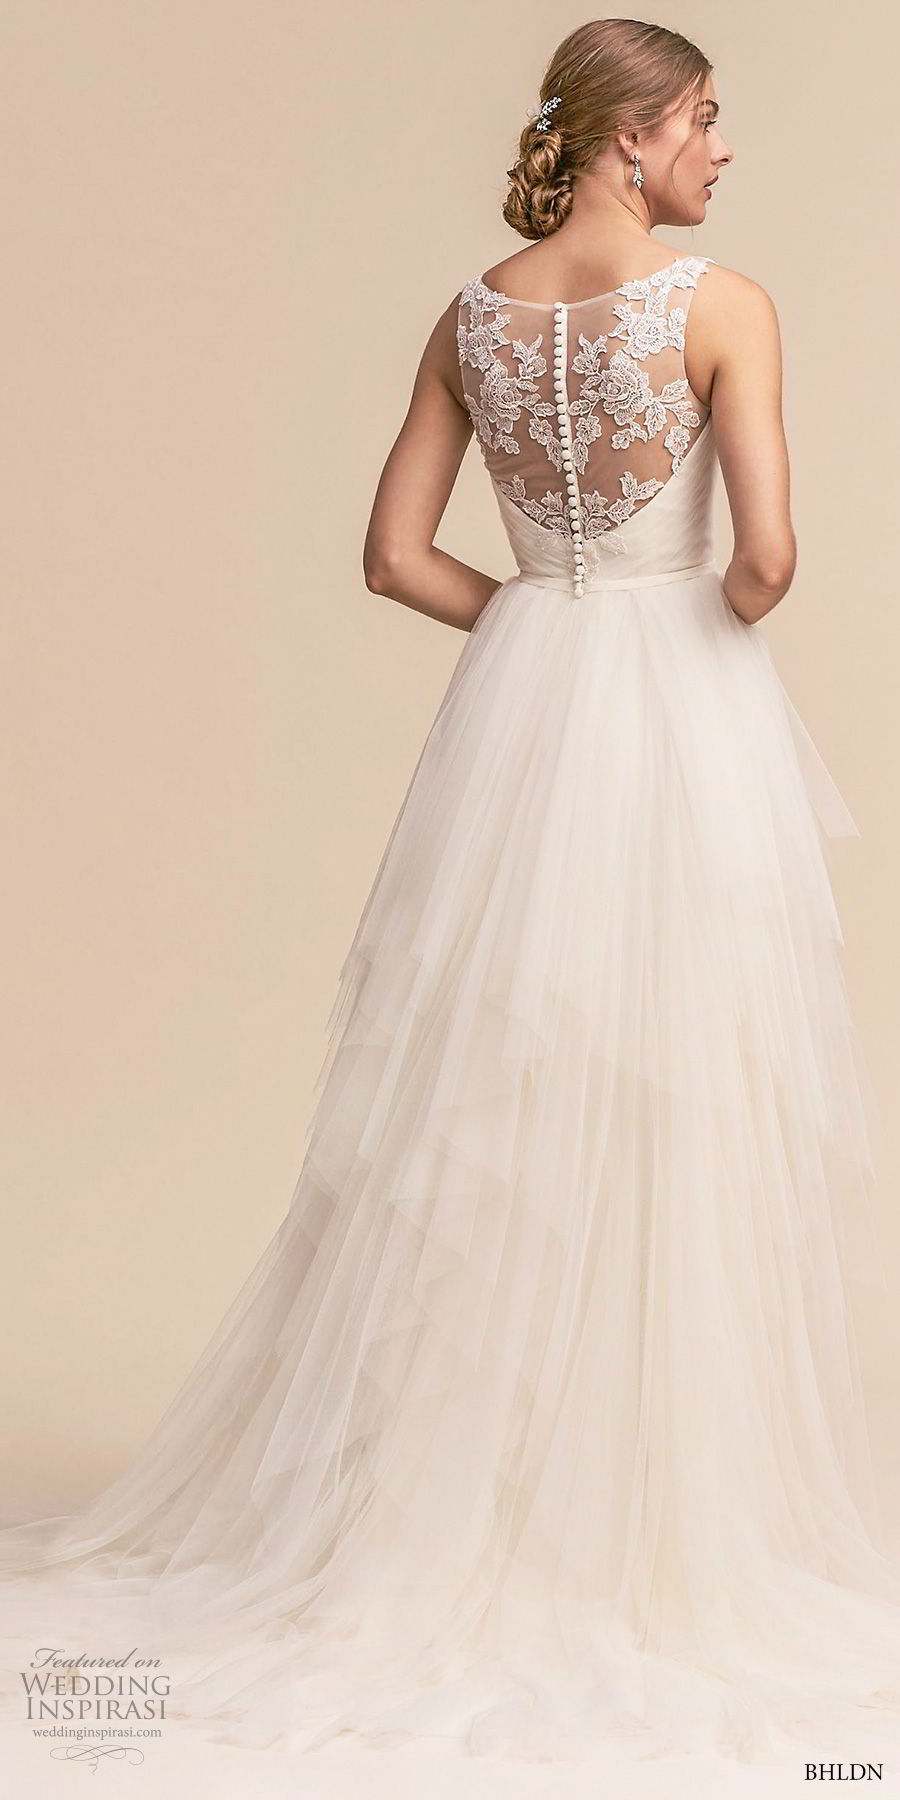 bhldn 2018 whispers bridal sleeveless deep v neck wrap over bodice simple romantic soft a line wedding dress sheer lace back short train (1) bv